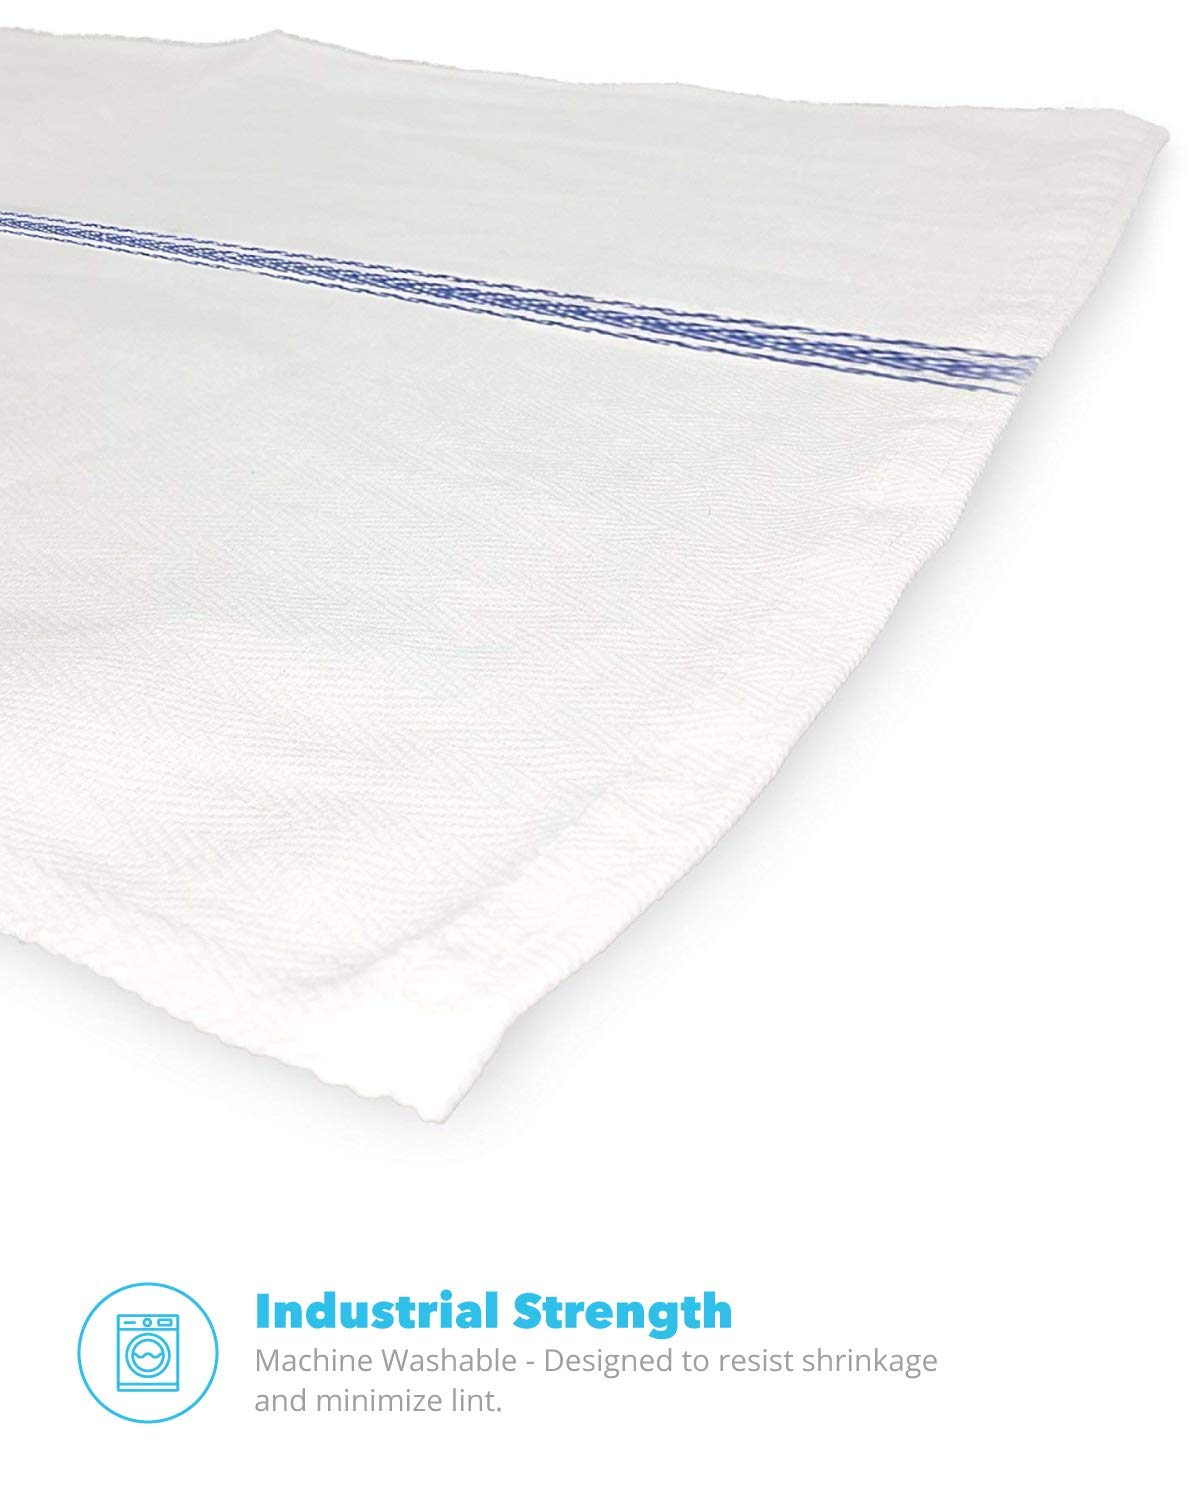 Royal Classic White Kitchen Towels - industrial